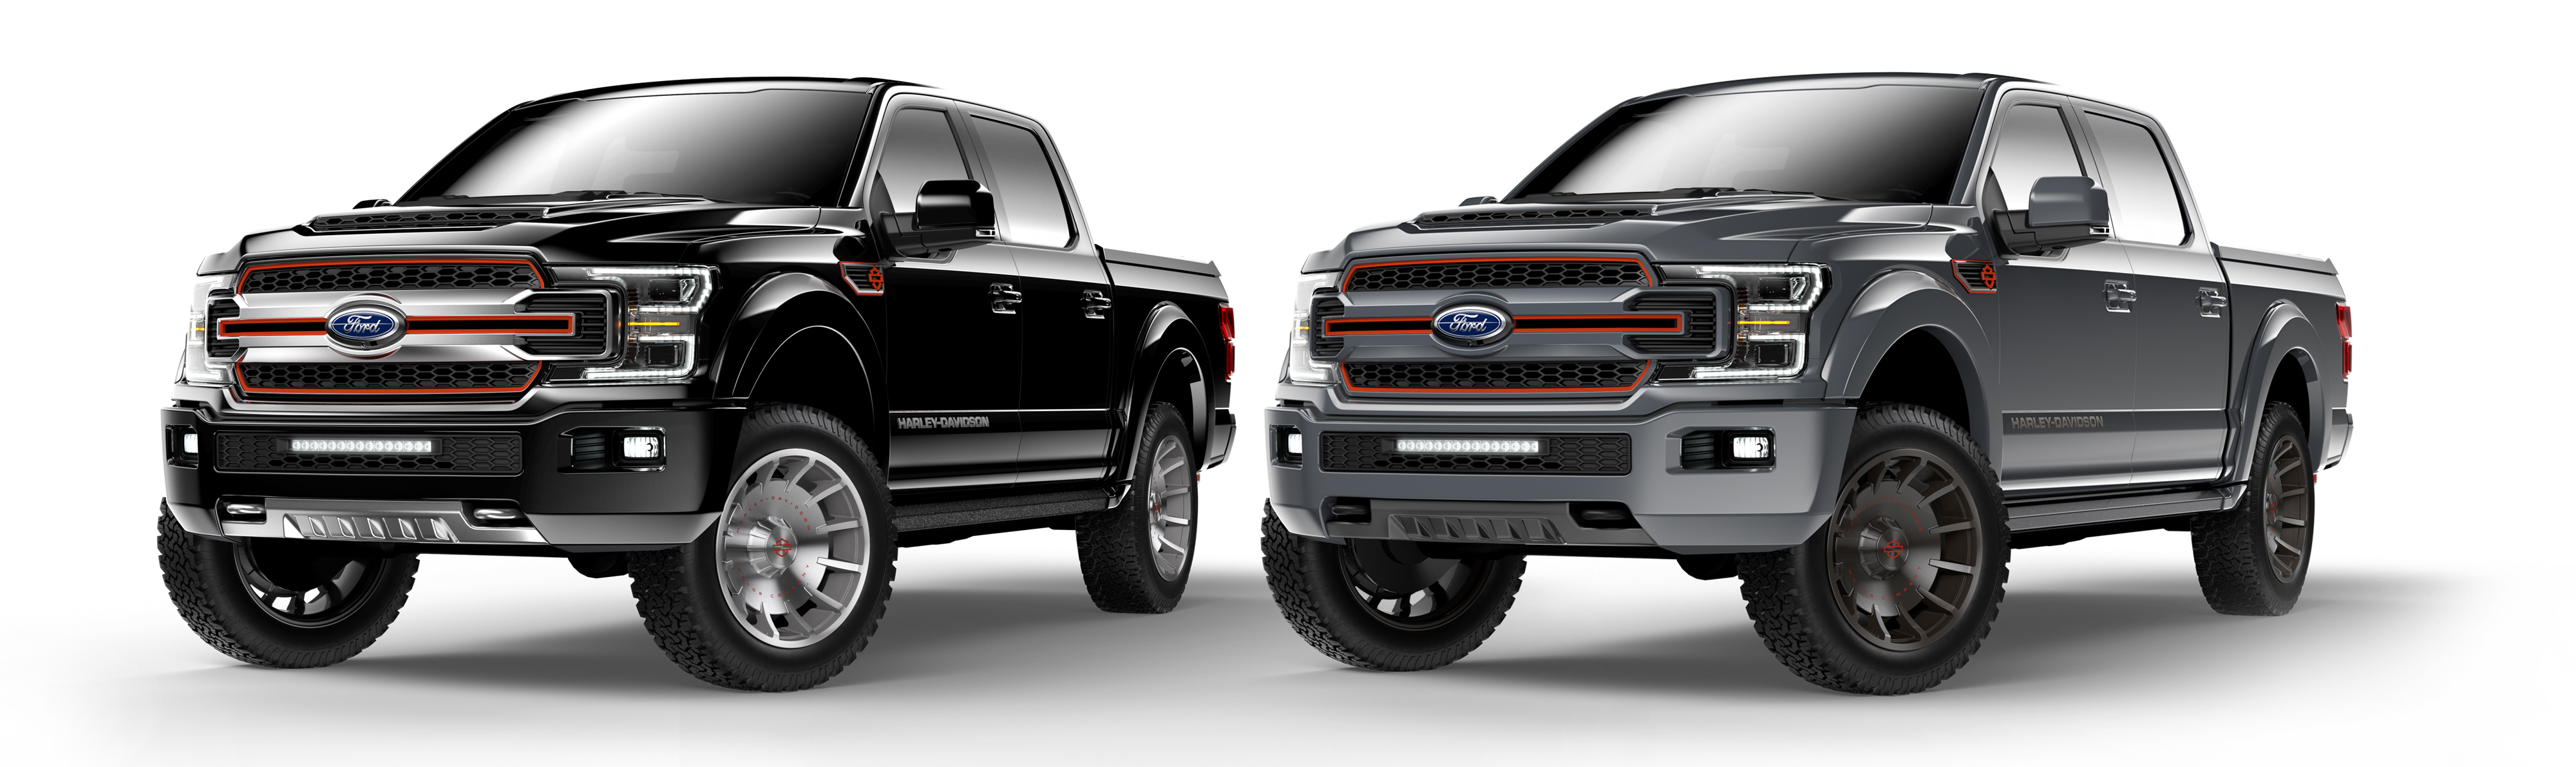 2019 Ford F 150 Harley Davidson Truck On Display This Week In